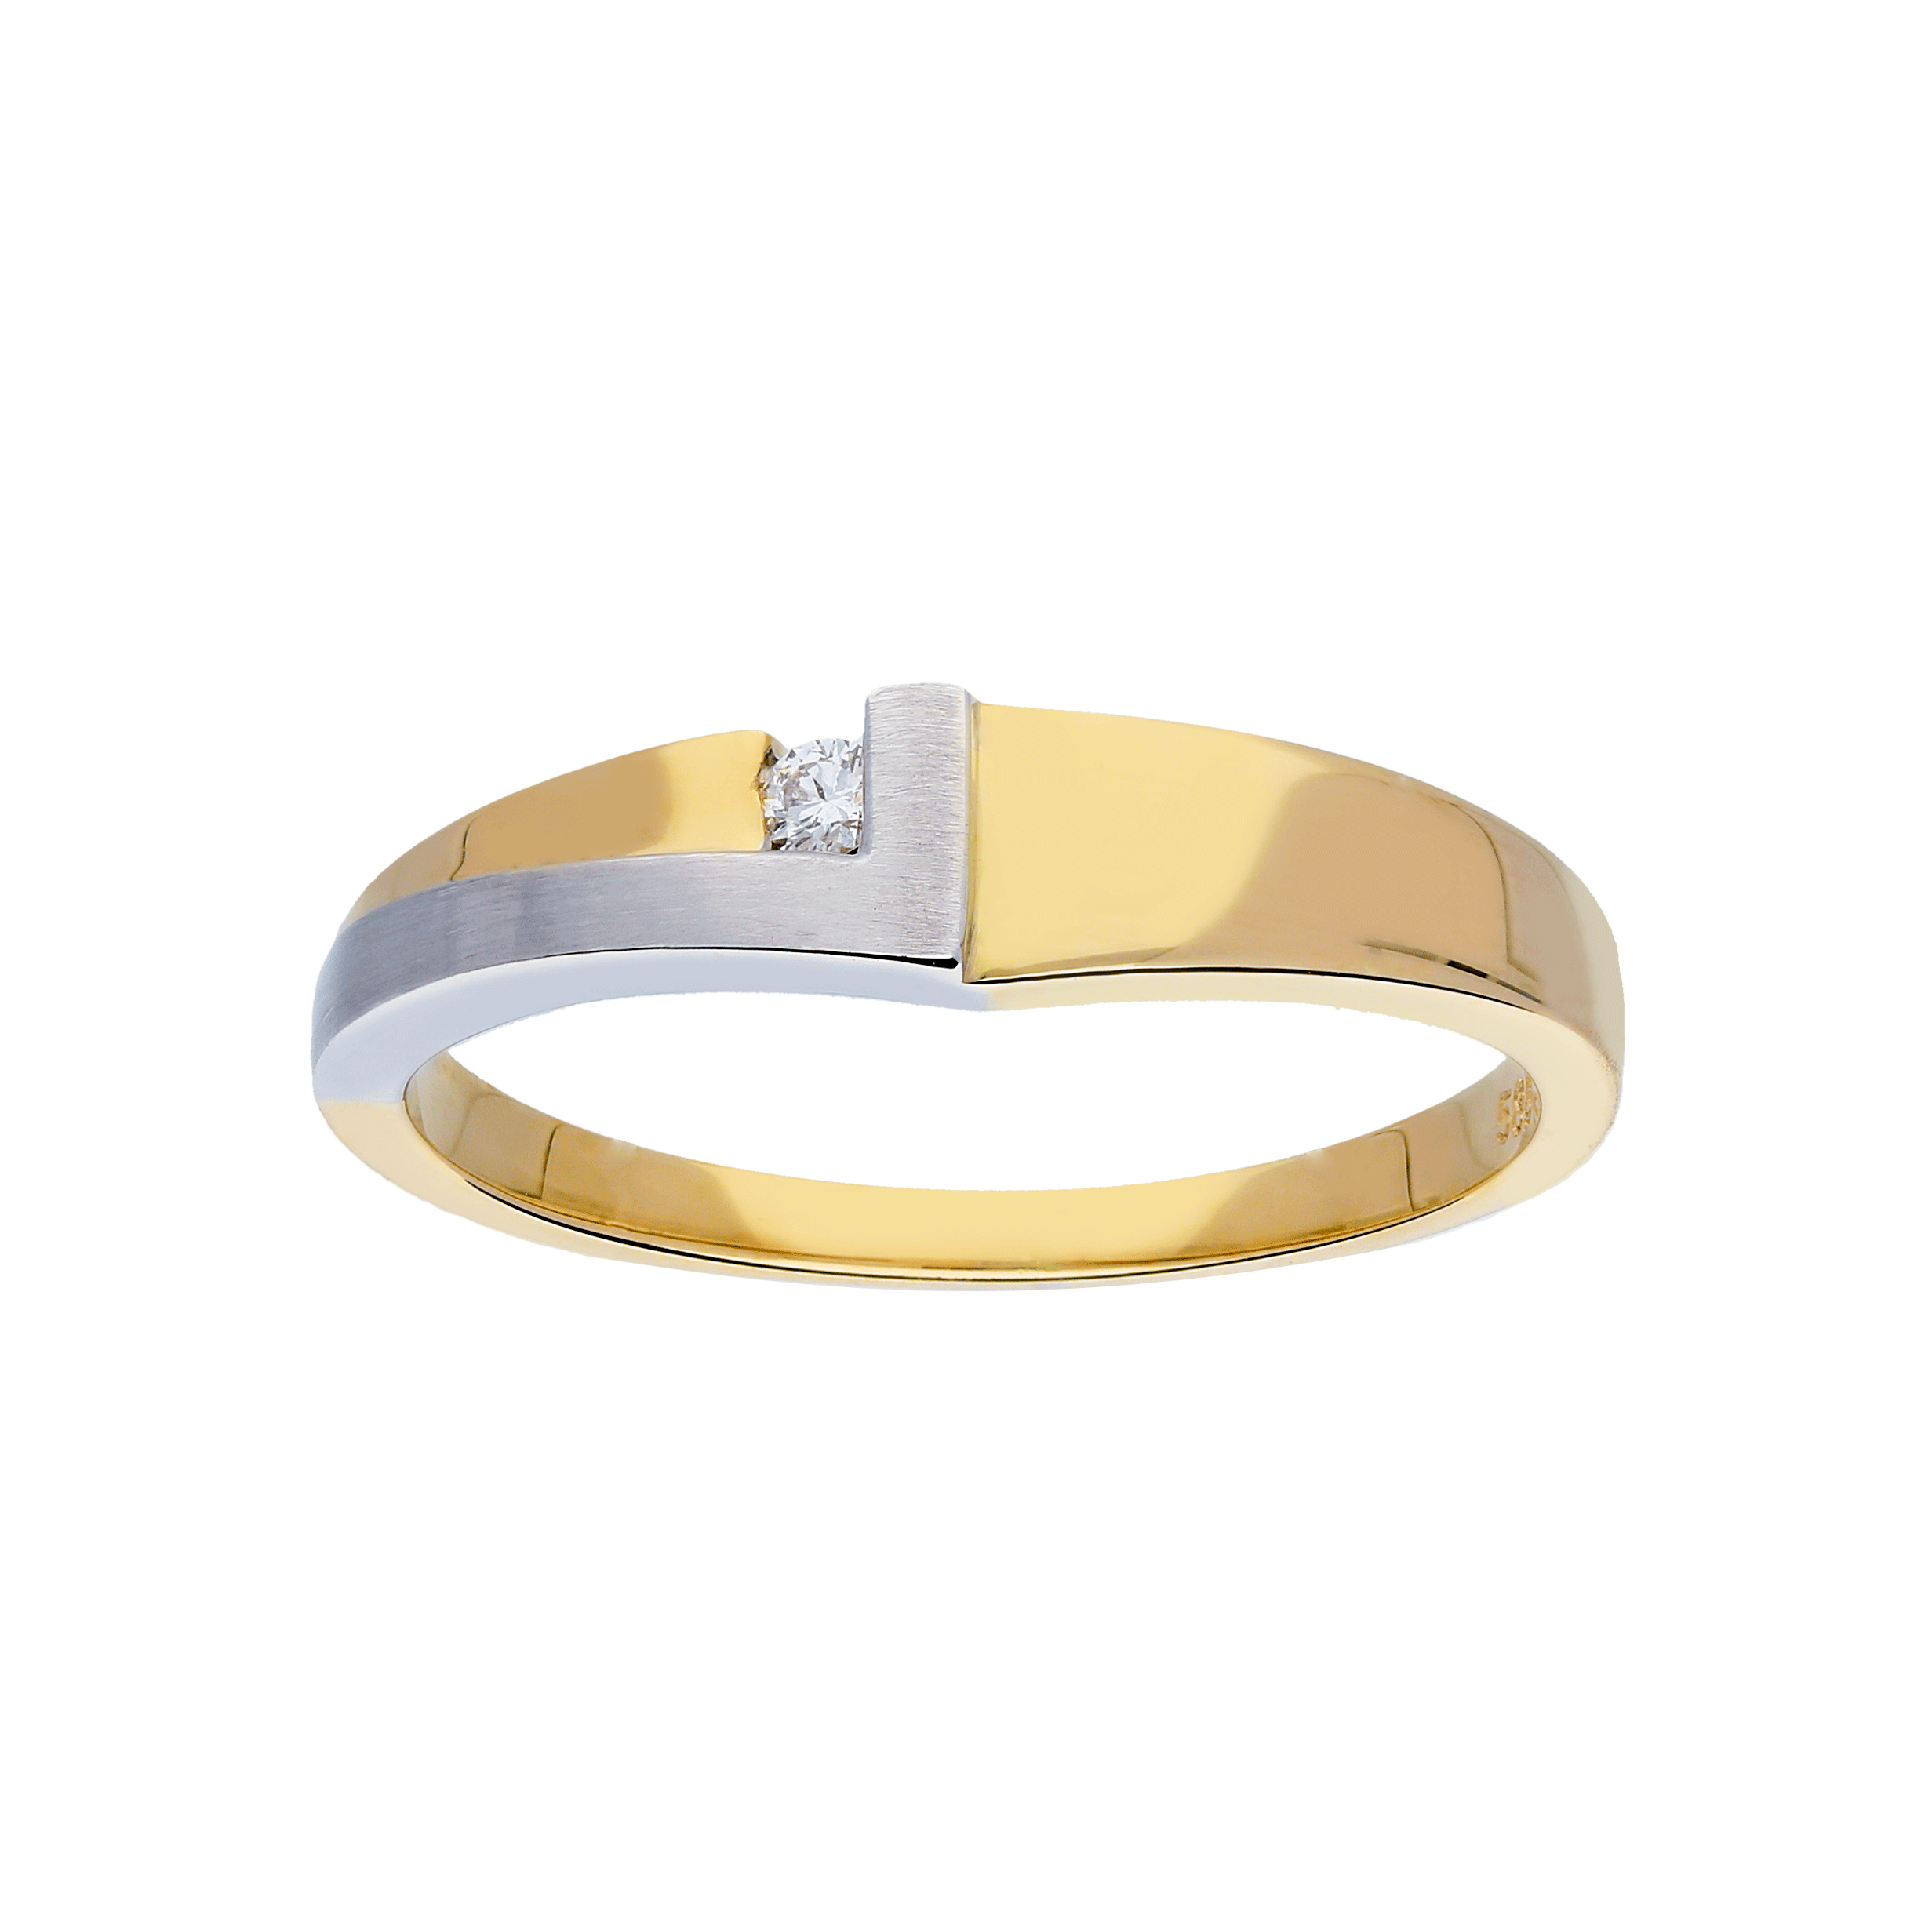 Glow Gouden Ring Bicolor Mat Glanzend Diamant 1 0.03ct G si 214.5203.58